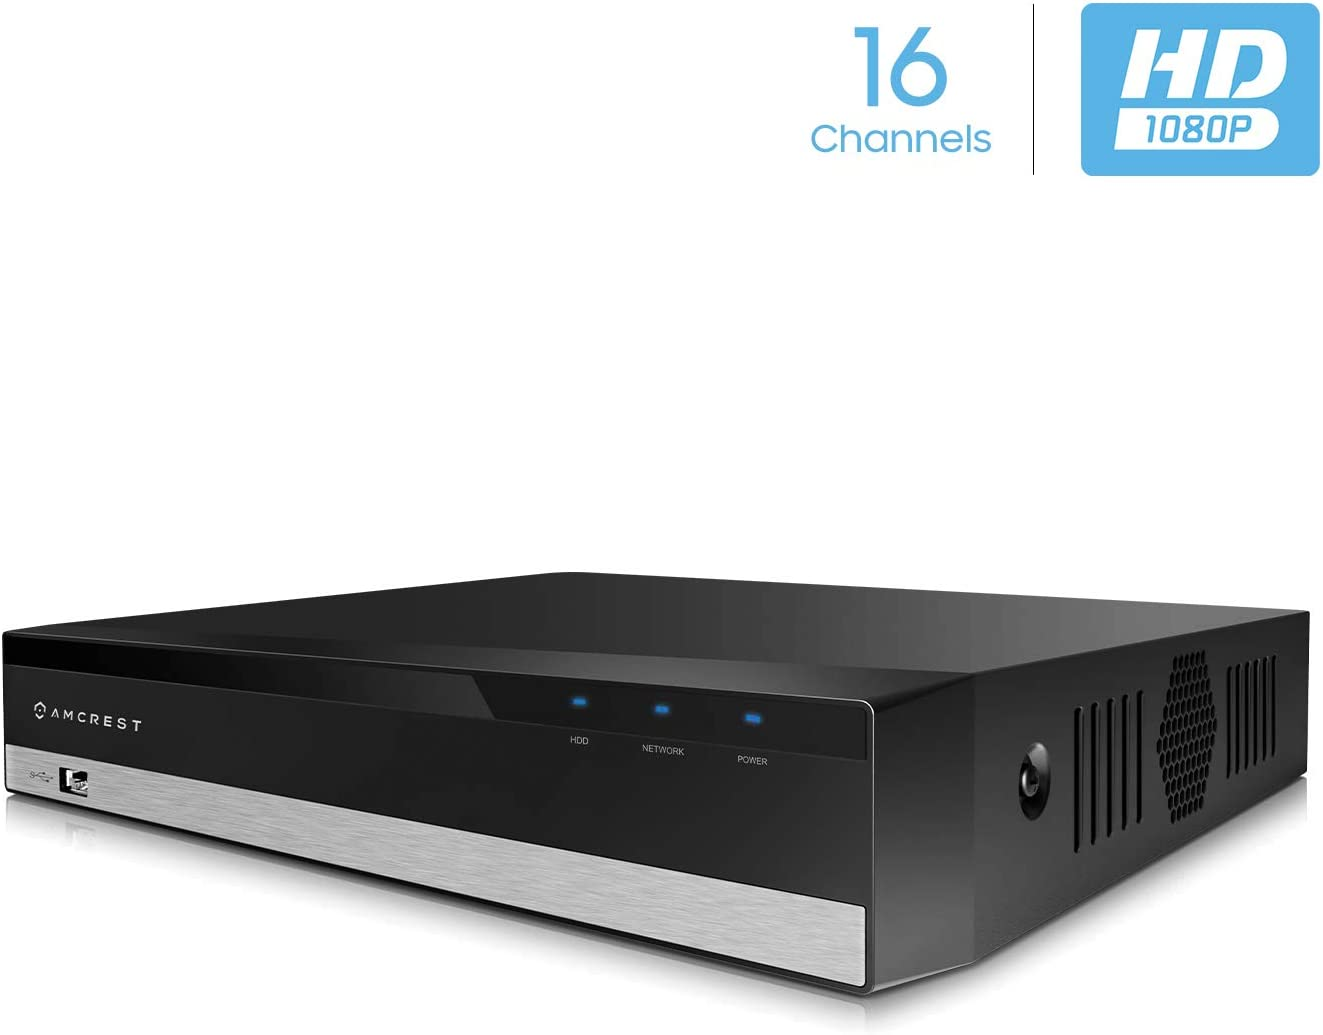 Amcrest ProHD 1080P 16CH Video Security DVR Digital Recorder, 16-Channel 1080P, Supports 960H HDCVI HDTVI AHD Amcrest IP, HDD Cameras NOT Included, Remote Smartphone Access AMDV108116-H5